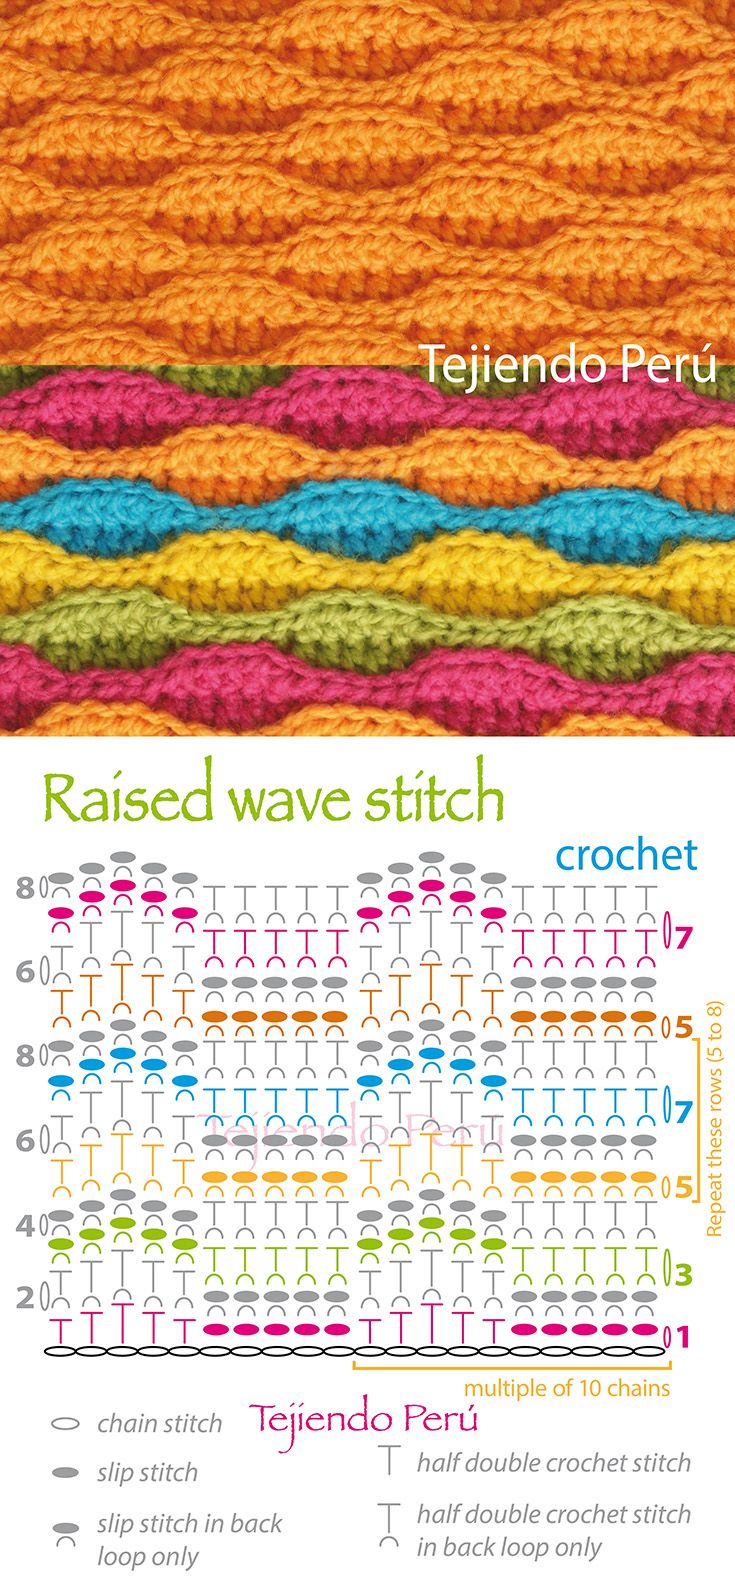 Crochet Double Stitch Diagram : Crochet: textured wave stitch diagram! Puntos fantas?a ...